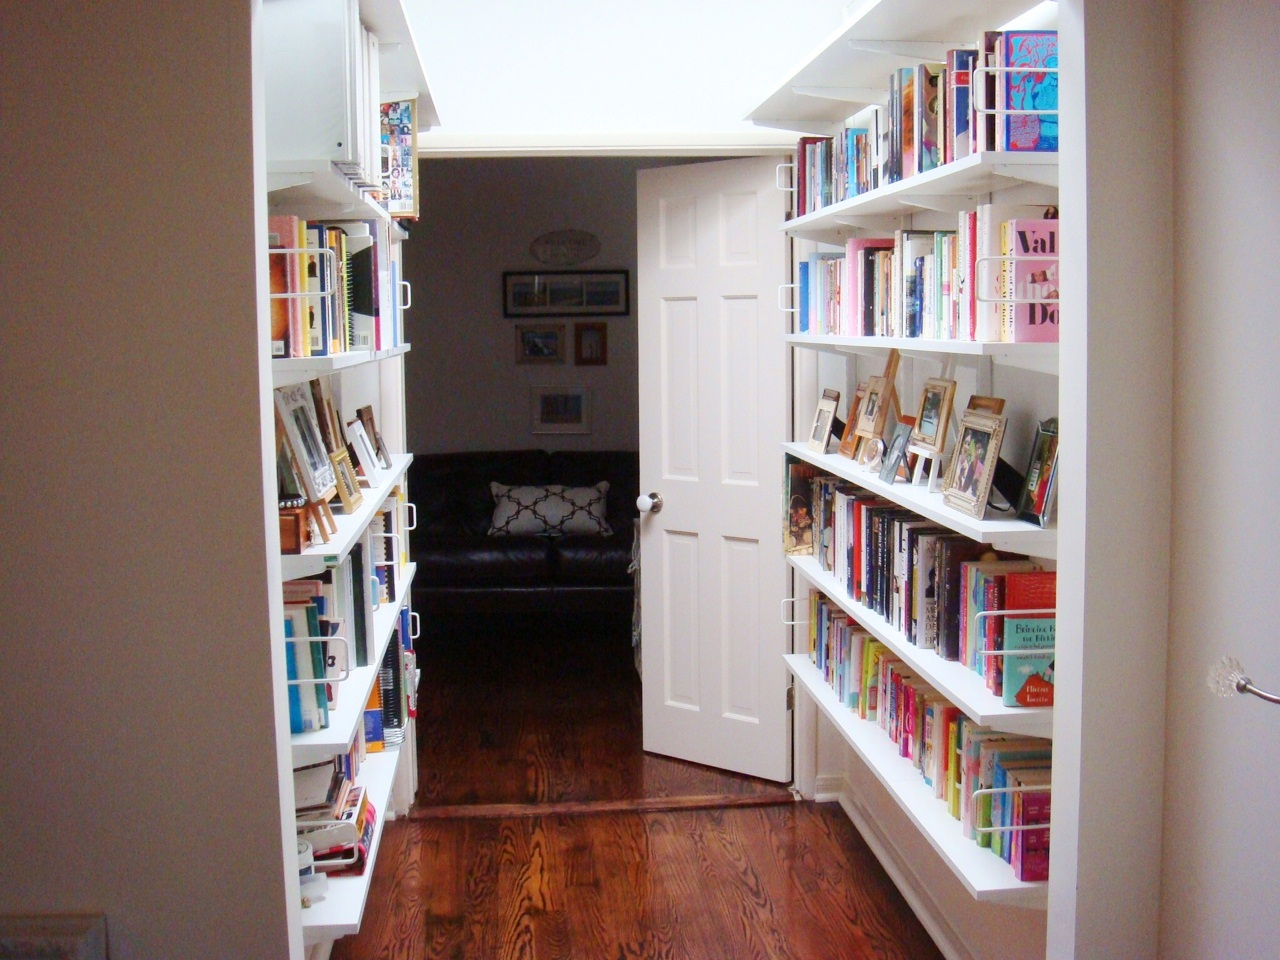 After Replacing The Honey Colored Open Shelving Bookshelves With White Ones To Brighten Space